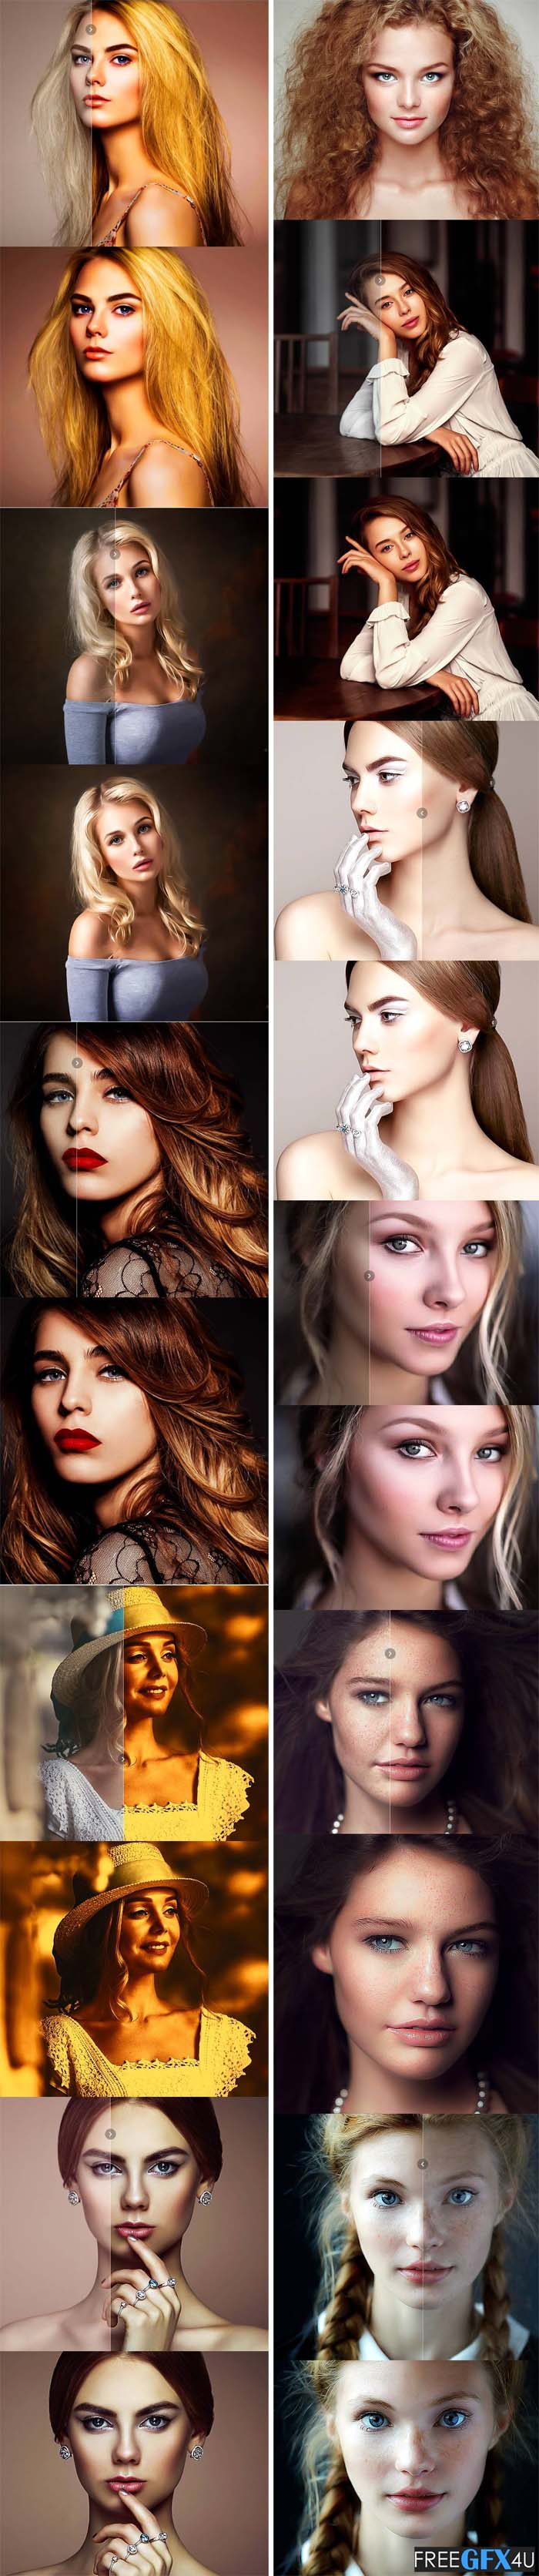 Incredible Skin Glow Effects Free Download